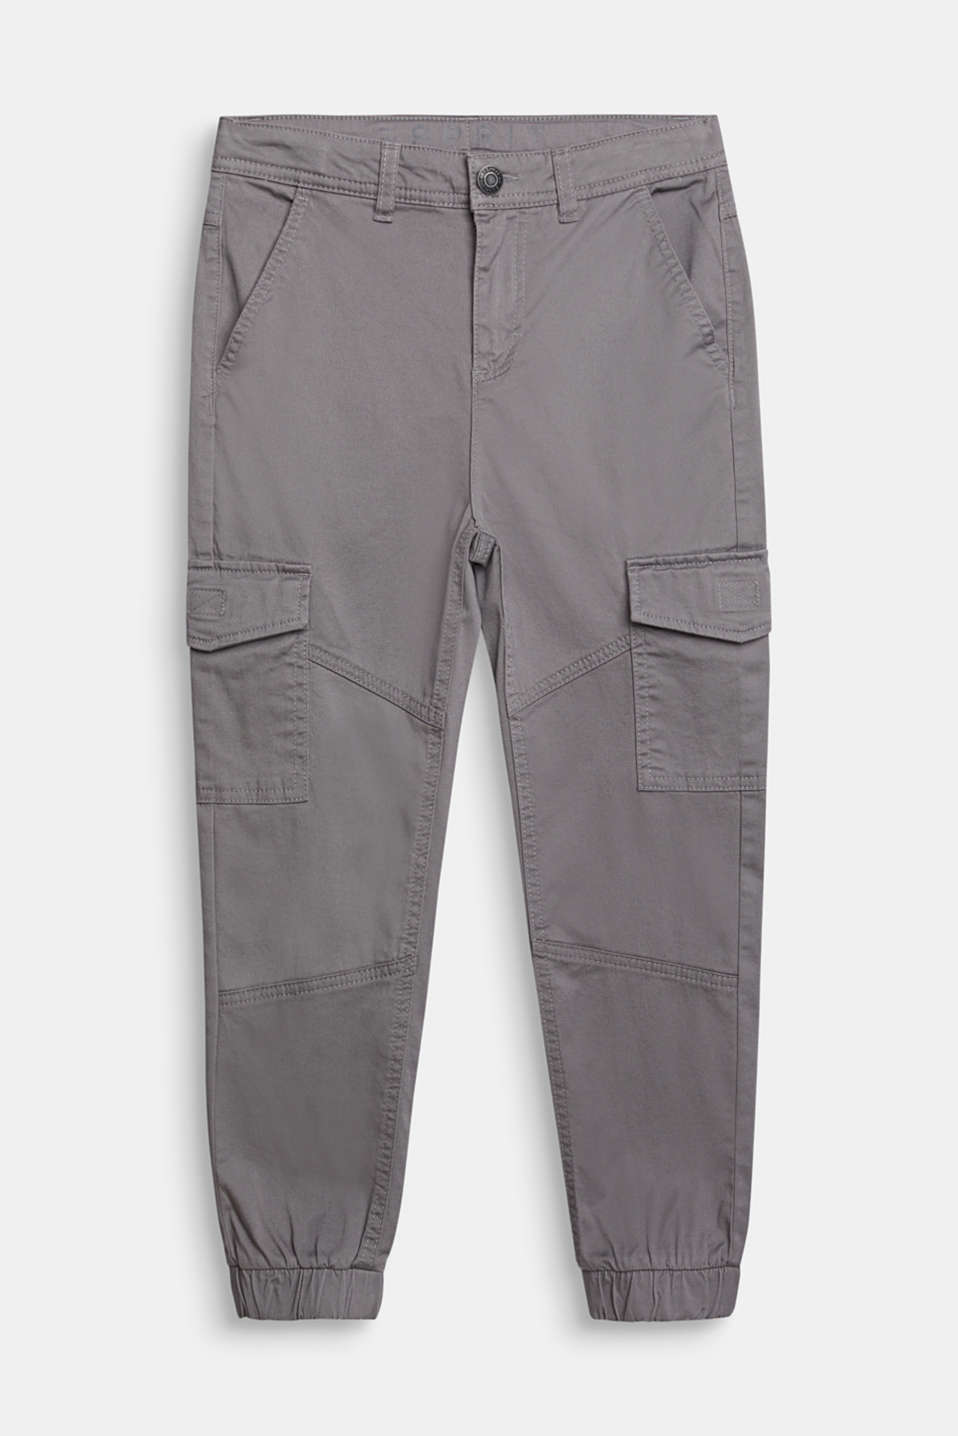 Stretch cotton cargo trousers, adjustable waistband, LCGREY, detail image number 0